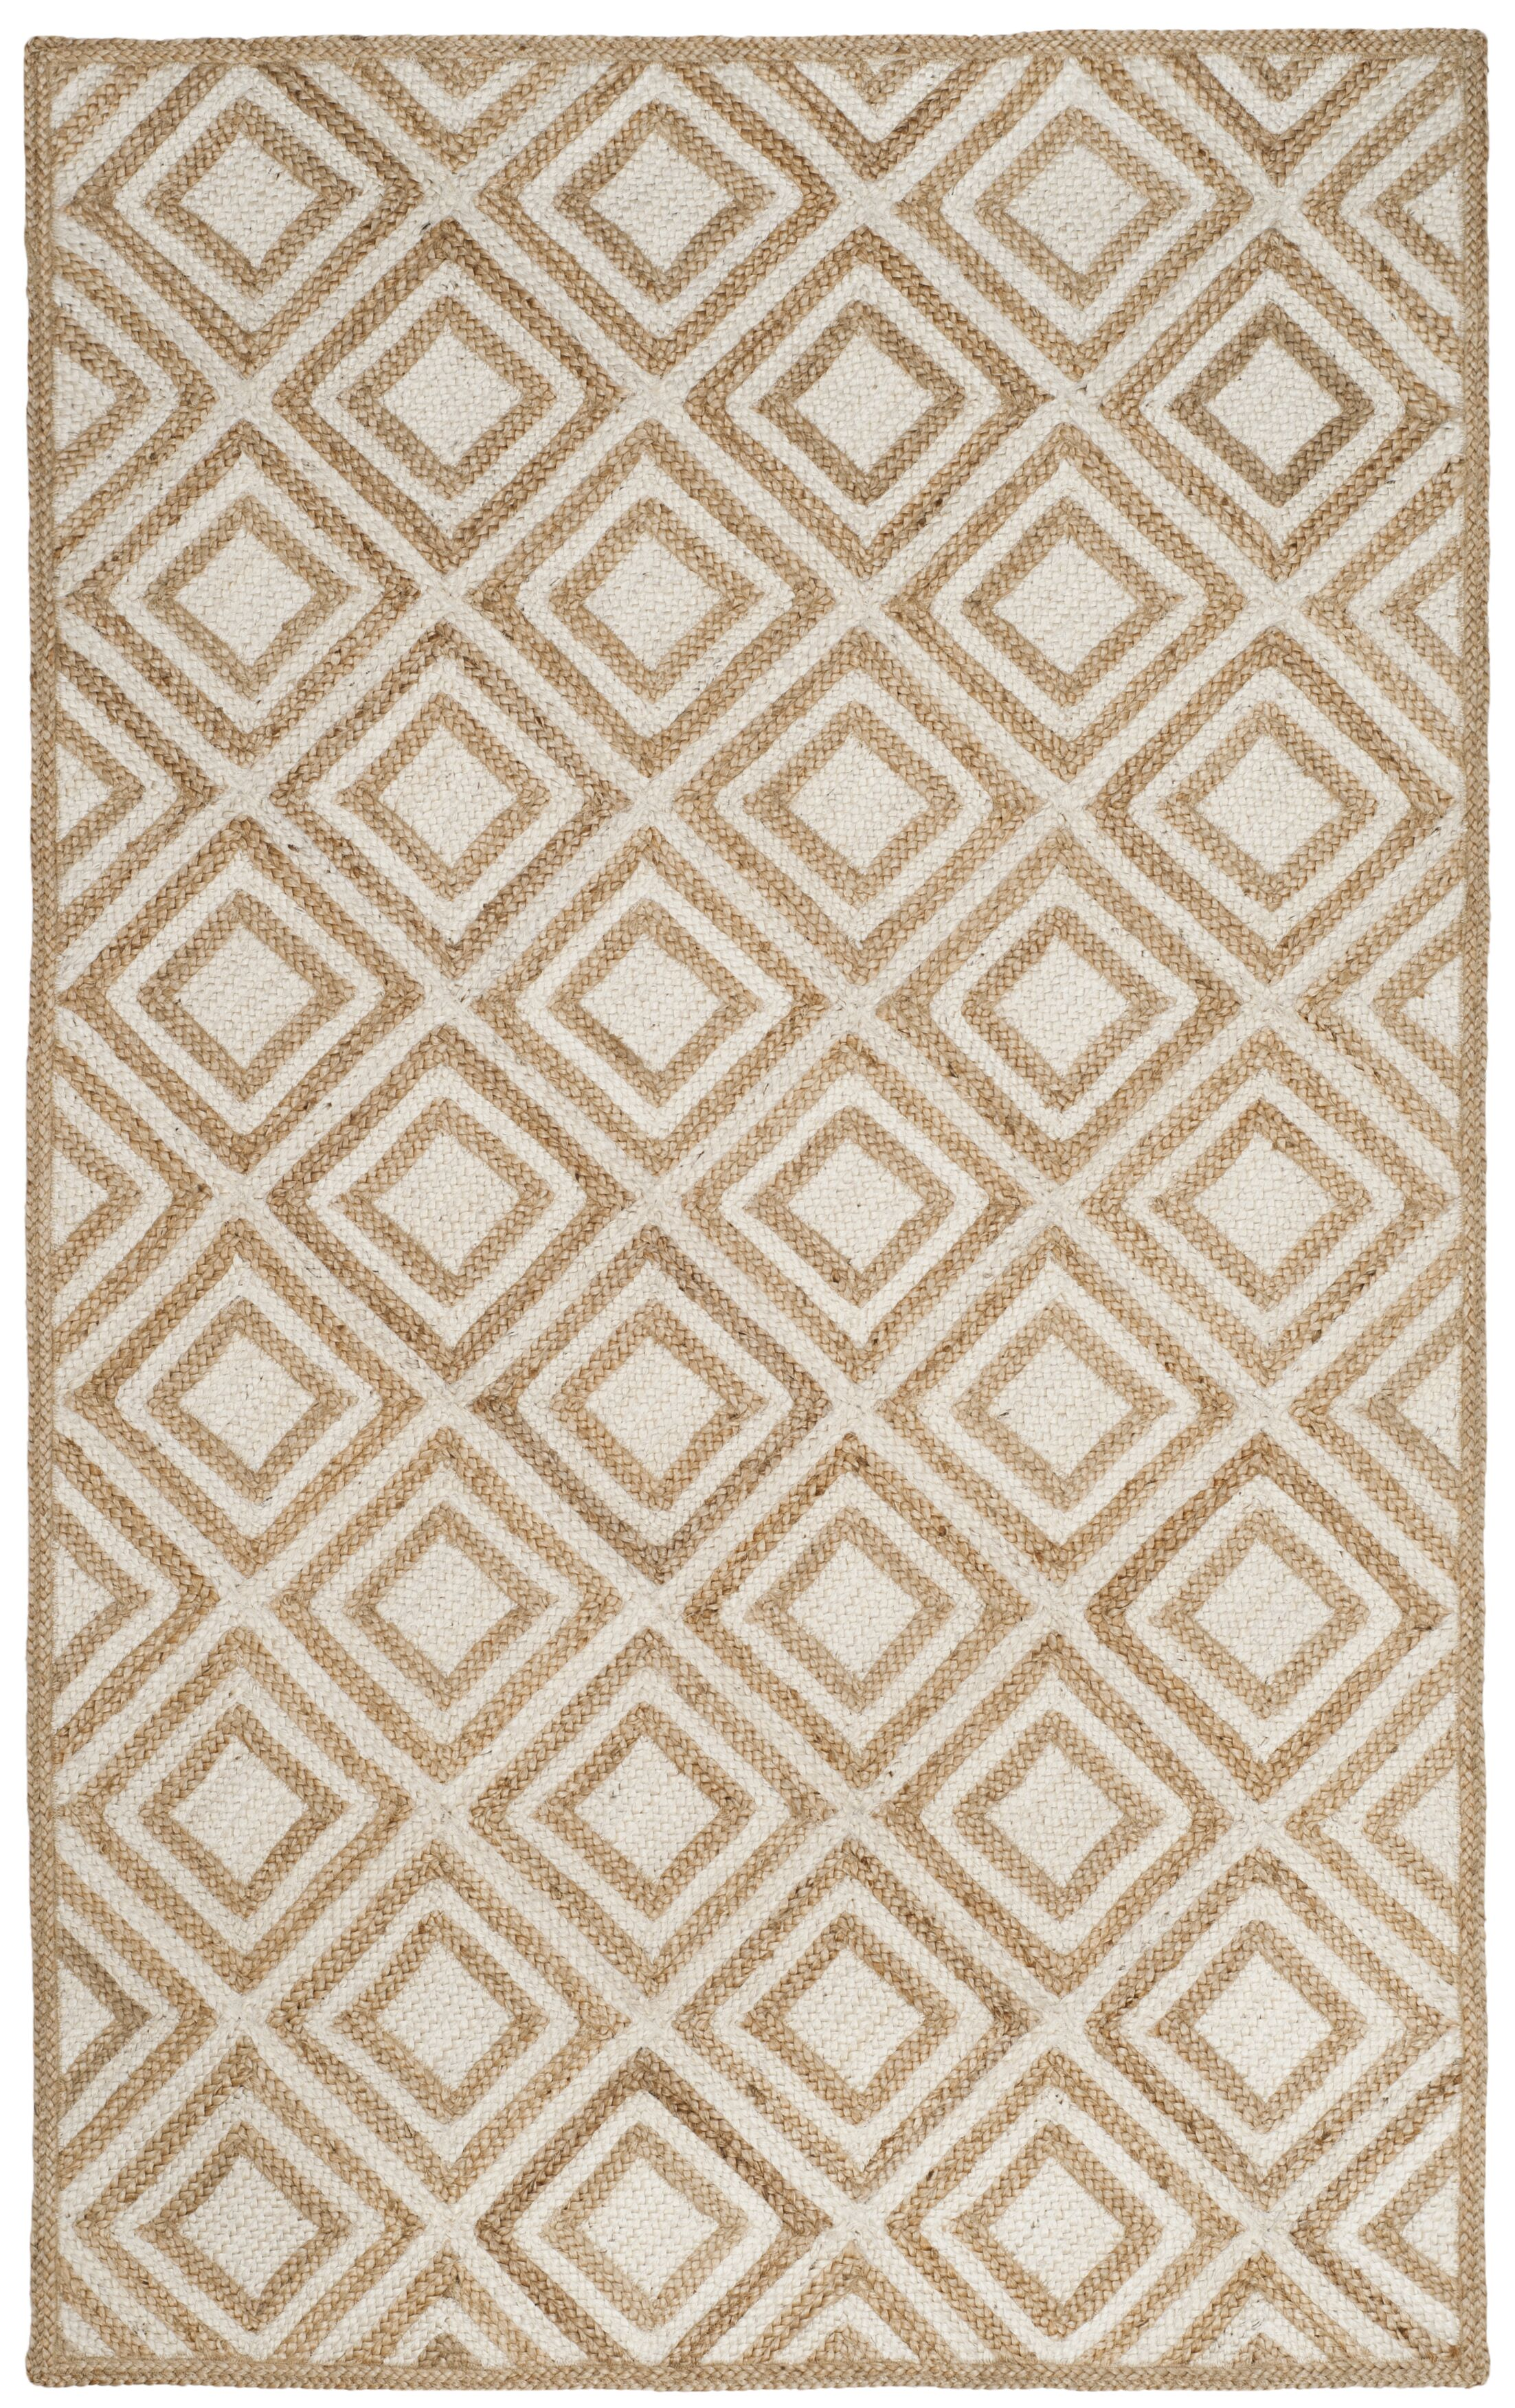 Abhay Contemporary Hand Woven Beige/White Area Rug Rug Size: Rectangle 6' x 9'